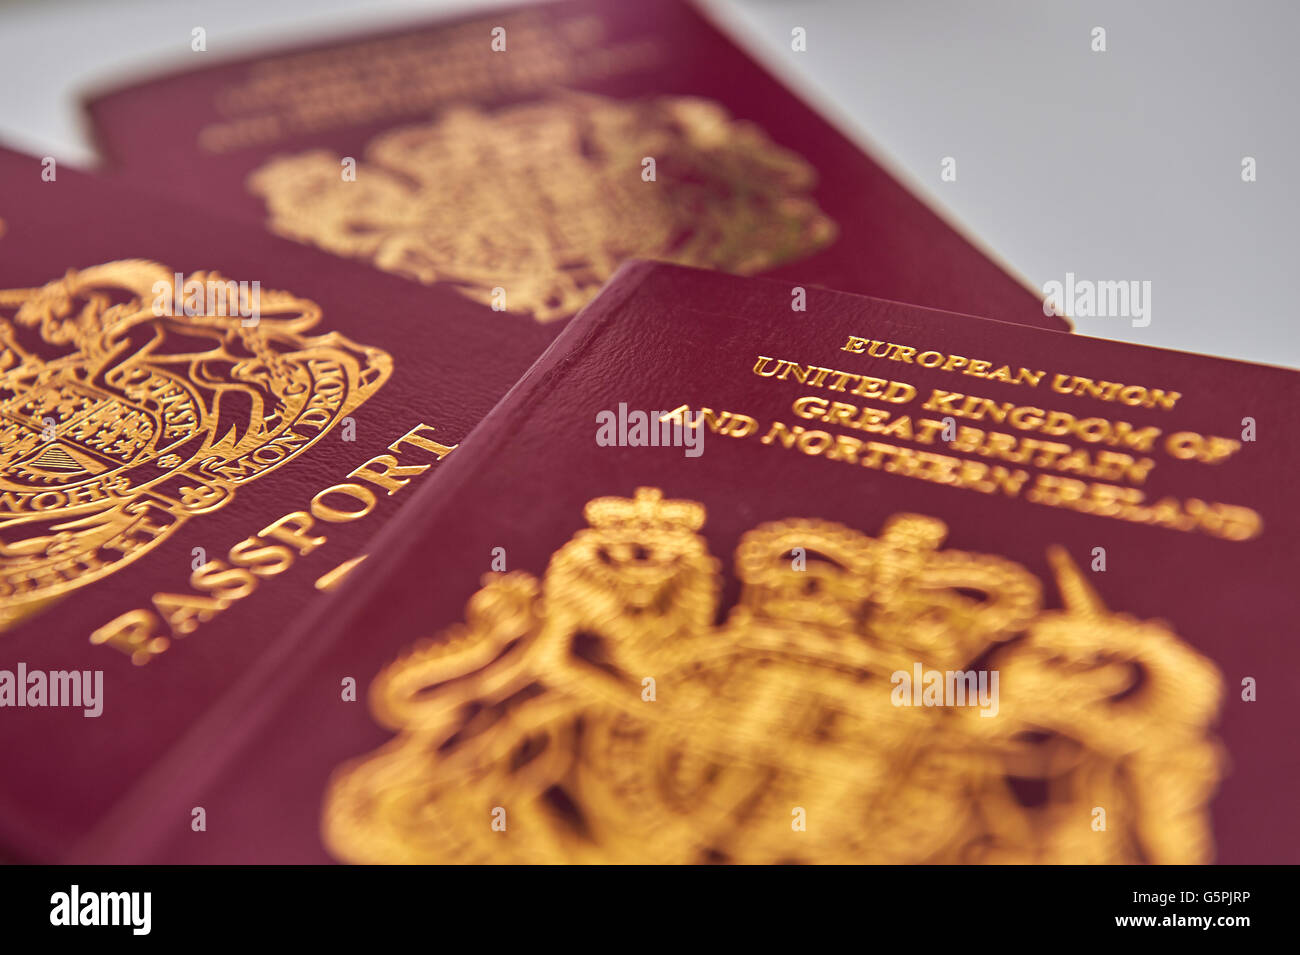 A British European Union passport on June 23, 2016 in Tokyo, Japan. Voters in Great Britain and Northern Ireland - Stock Image